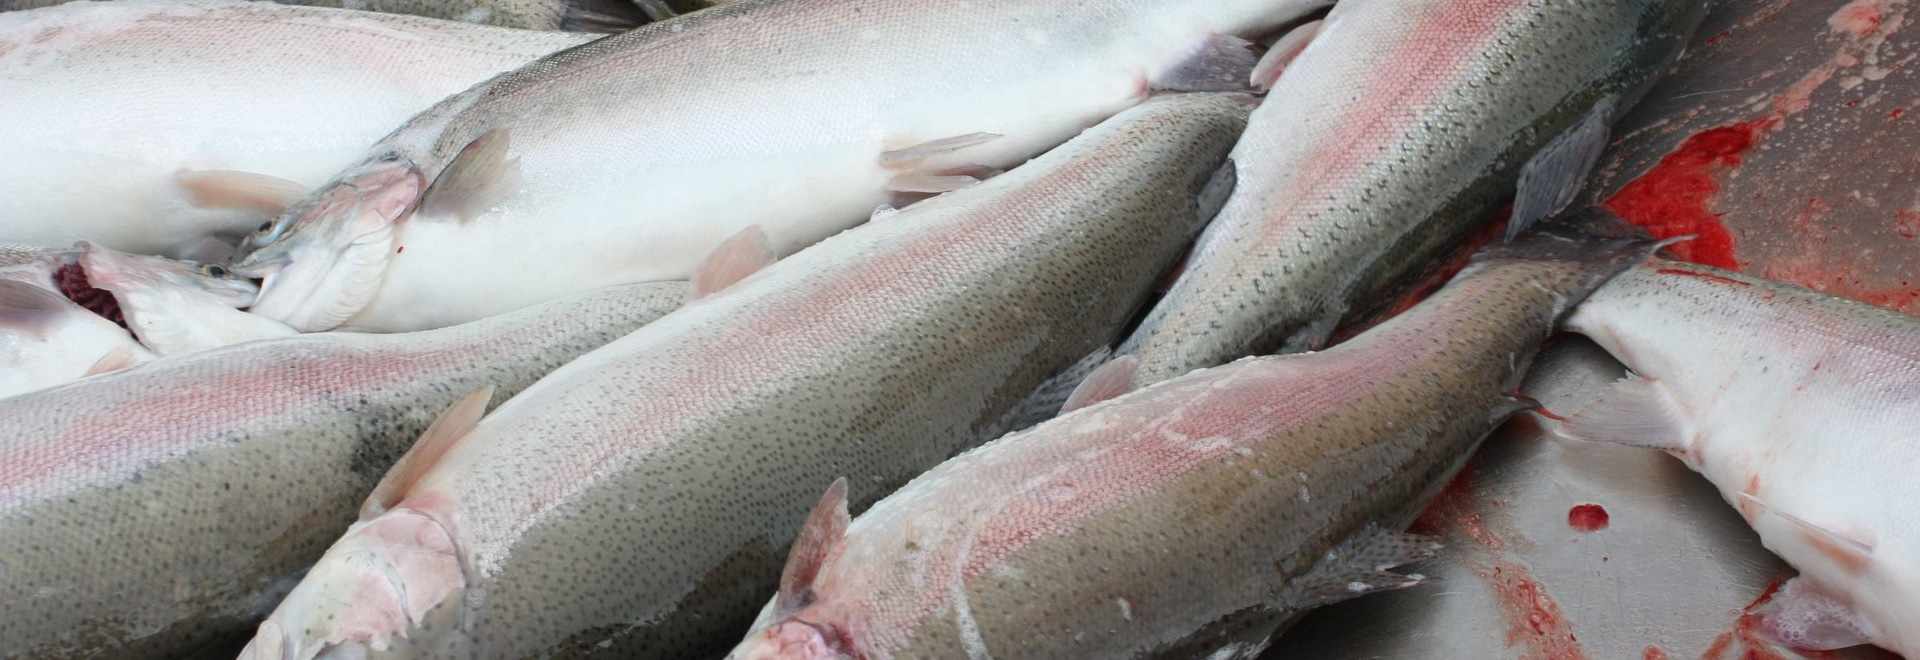 Denamrk is the 8th largest aquaculture producer in the UK, with a sector that is dominated by rainbow trout production